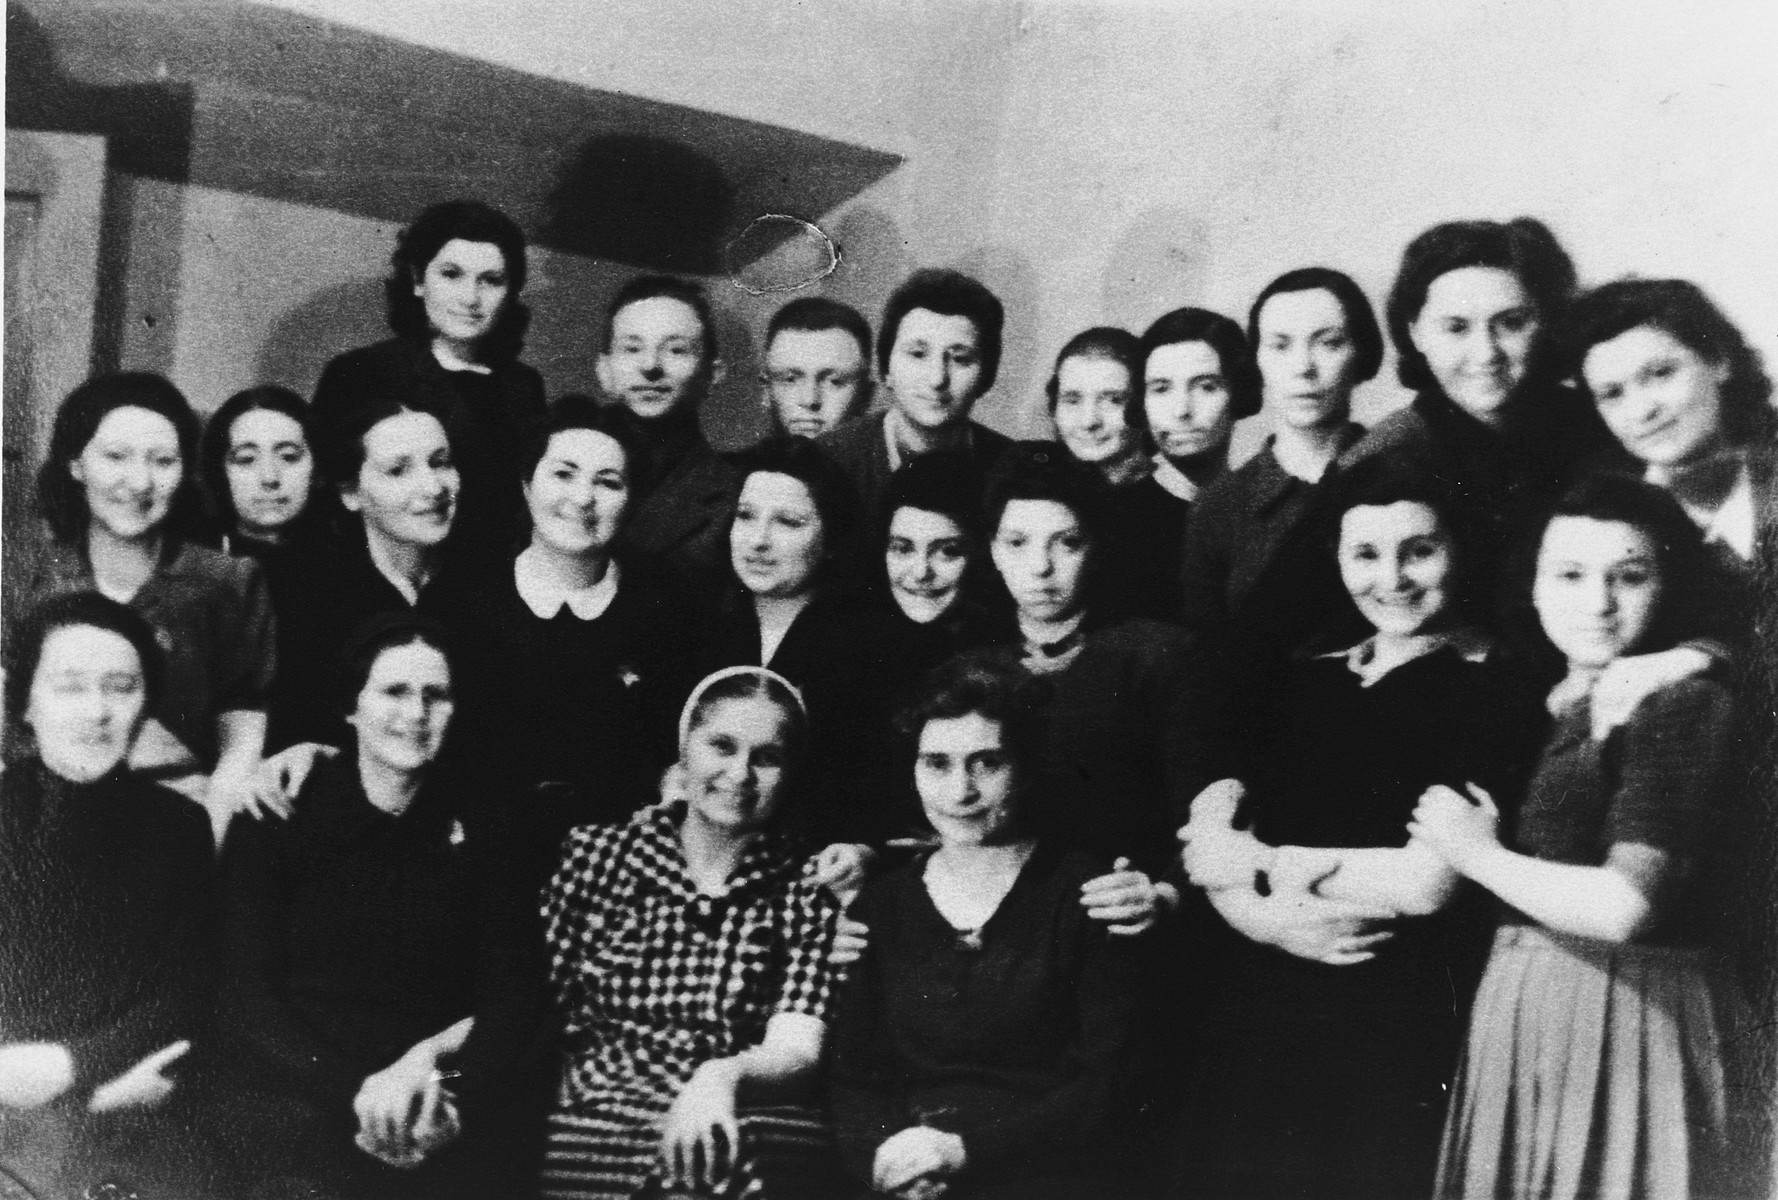 Group portrait of the staff of the coffee house in the Vilna ghetto.  Among those pictured are: Liza Beigel (top row, right), her sister, Mariussa Kowarsky (front row, standing, second from the right), Shura Kessler (middle row, left) and the head of the cafe, Mrs. Cyrynska (front row, center, in the checked dress).